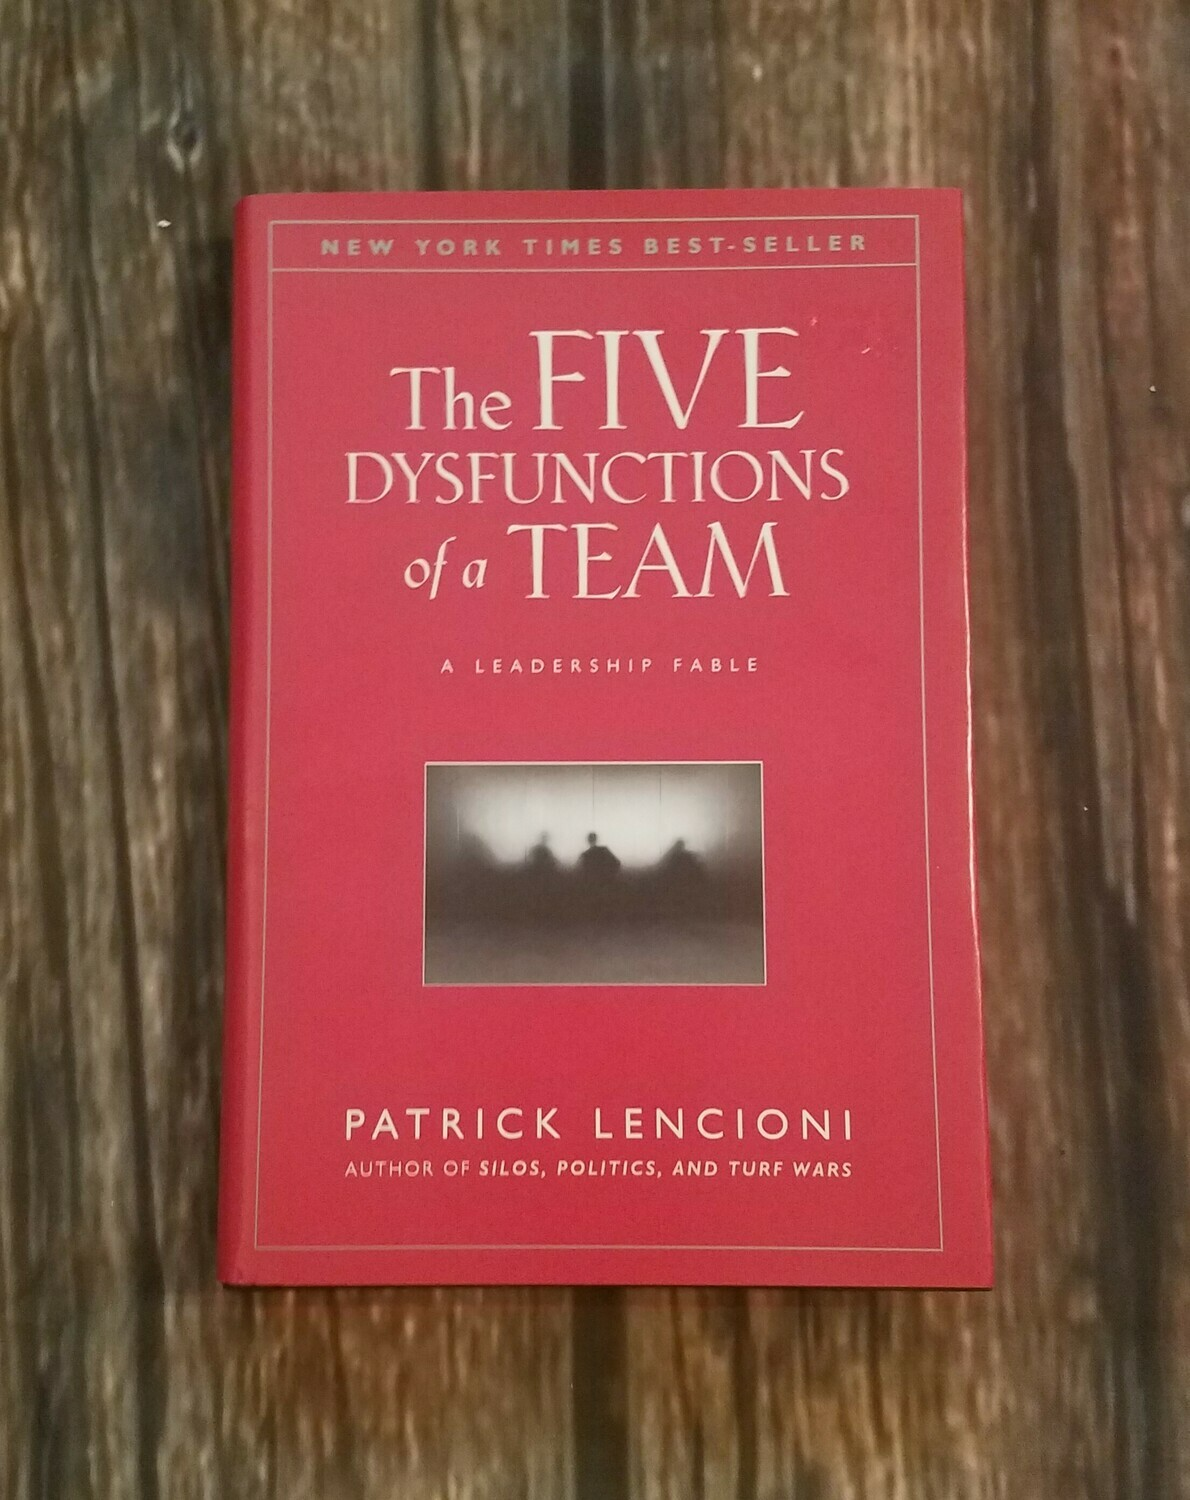 The Five Dysfunctions of a Team by Patrick Lencioni